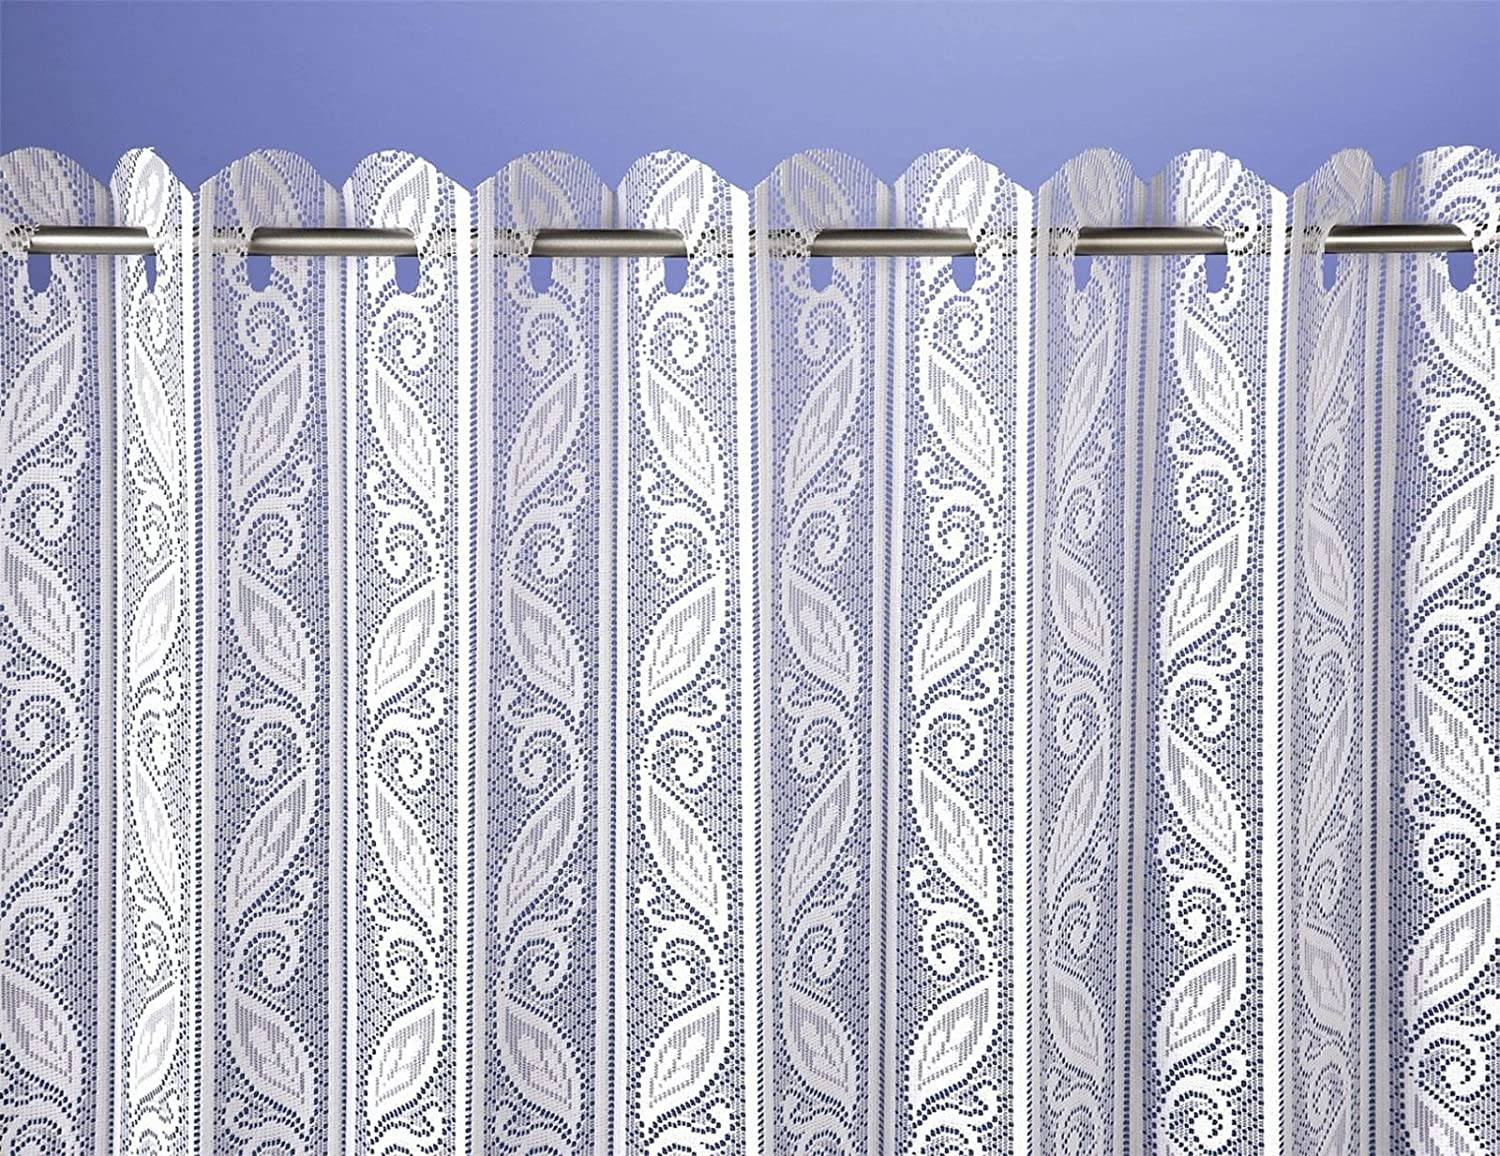 Lace Pleated Vertical Louvre Blind Window Net White 36